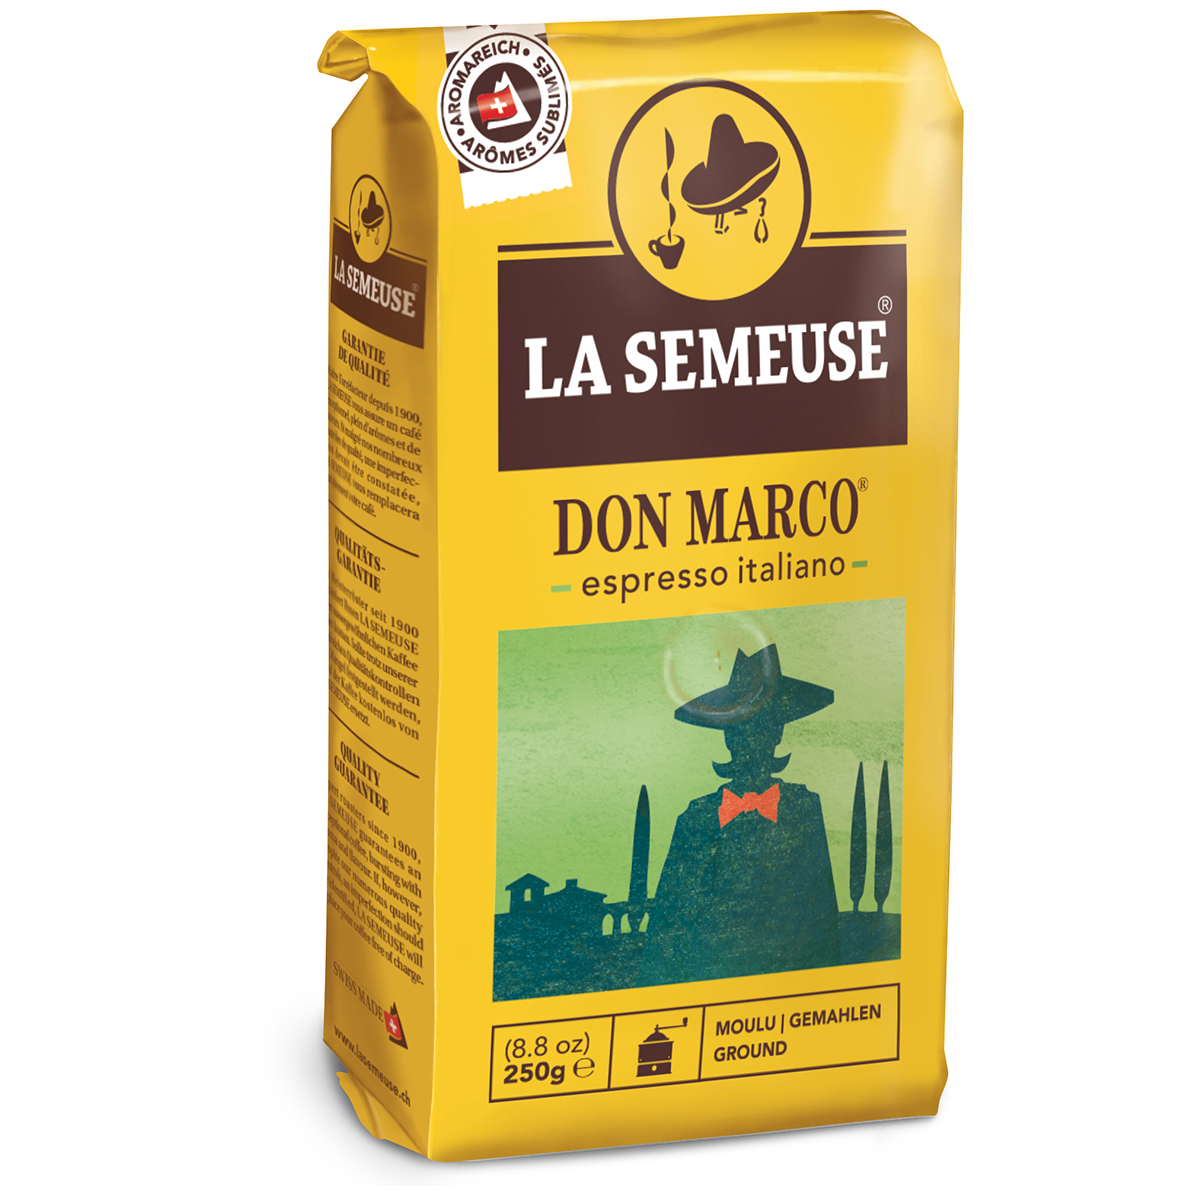 Don Marco Swiss Ground Coffee, Premium Coffee, 80% Arabica Coffee, Best before date: 28.01.2021